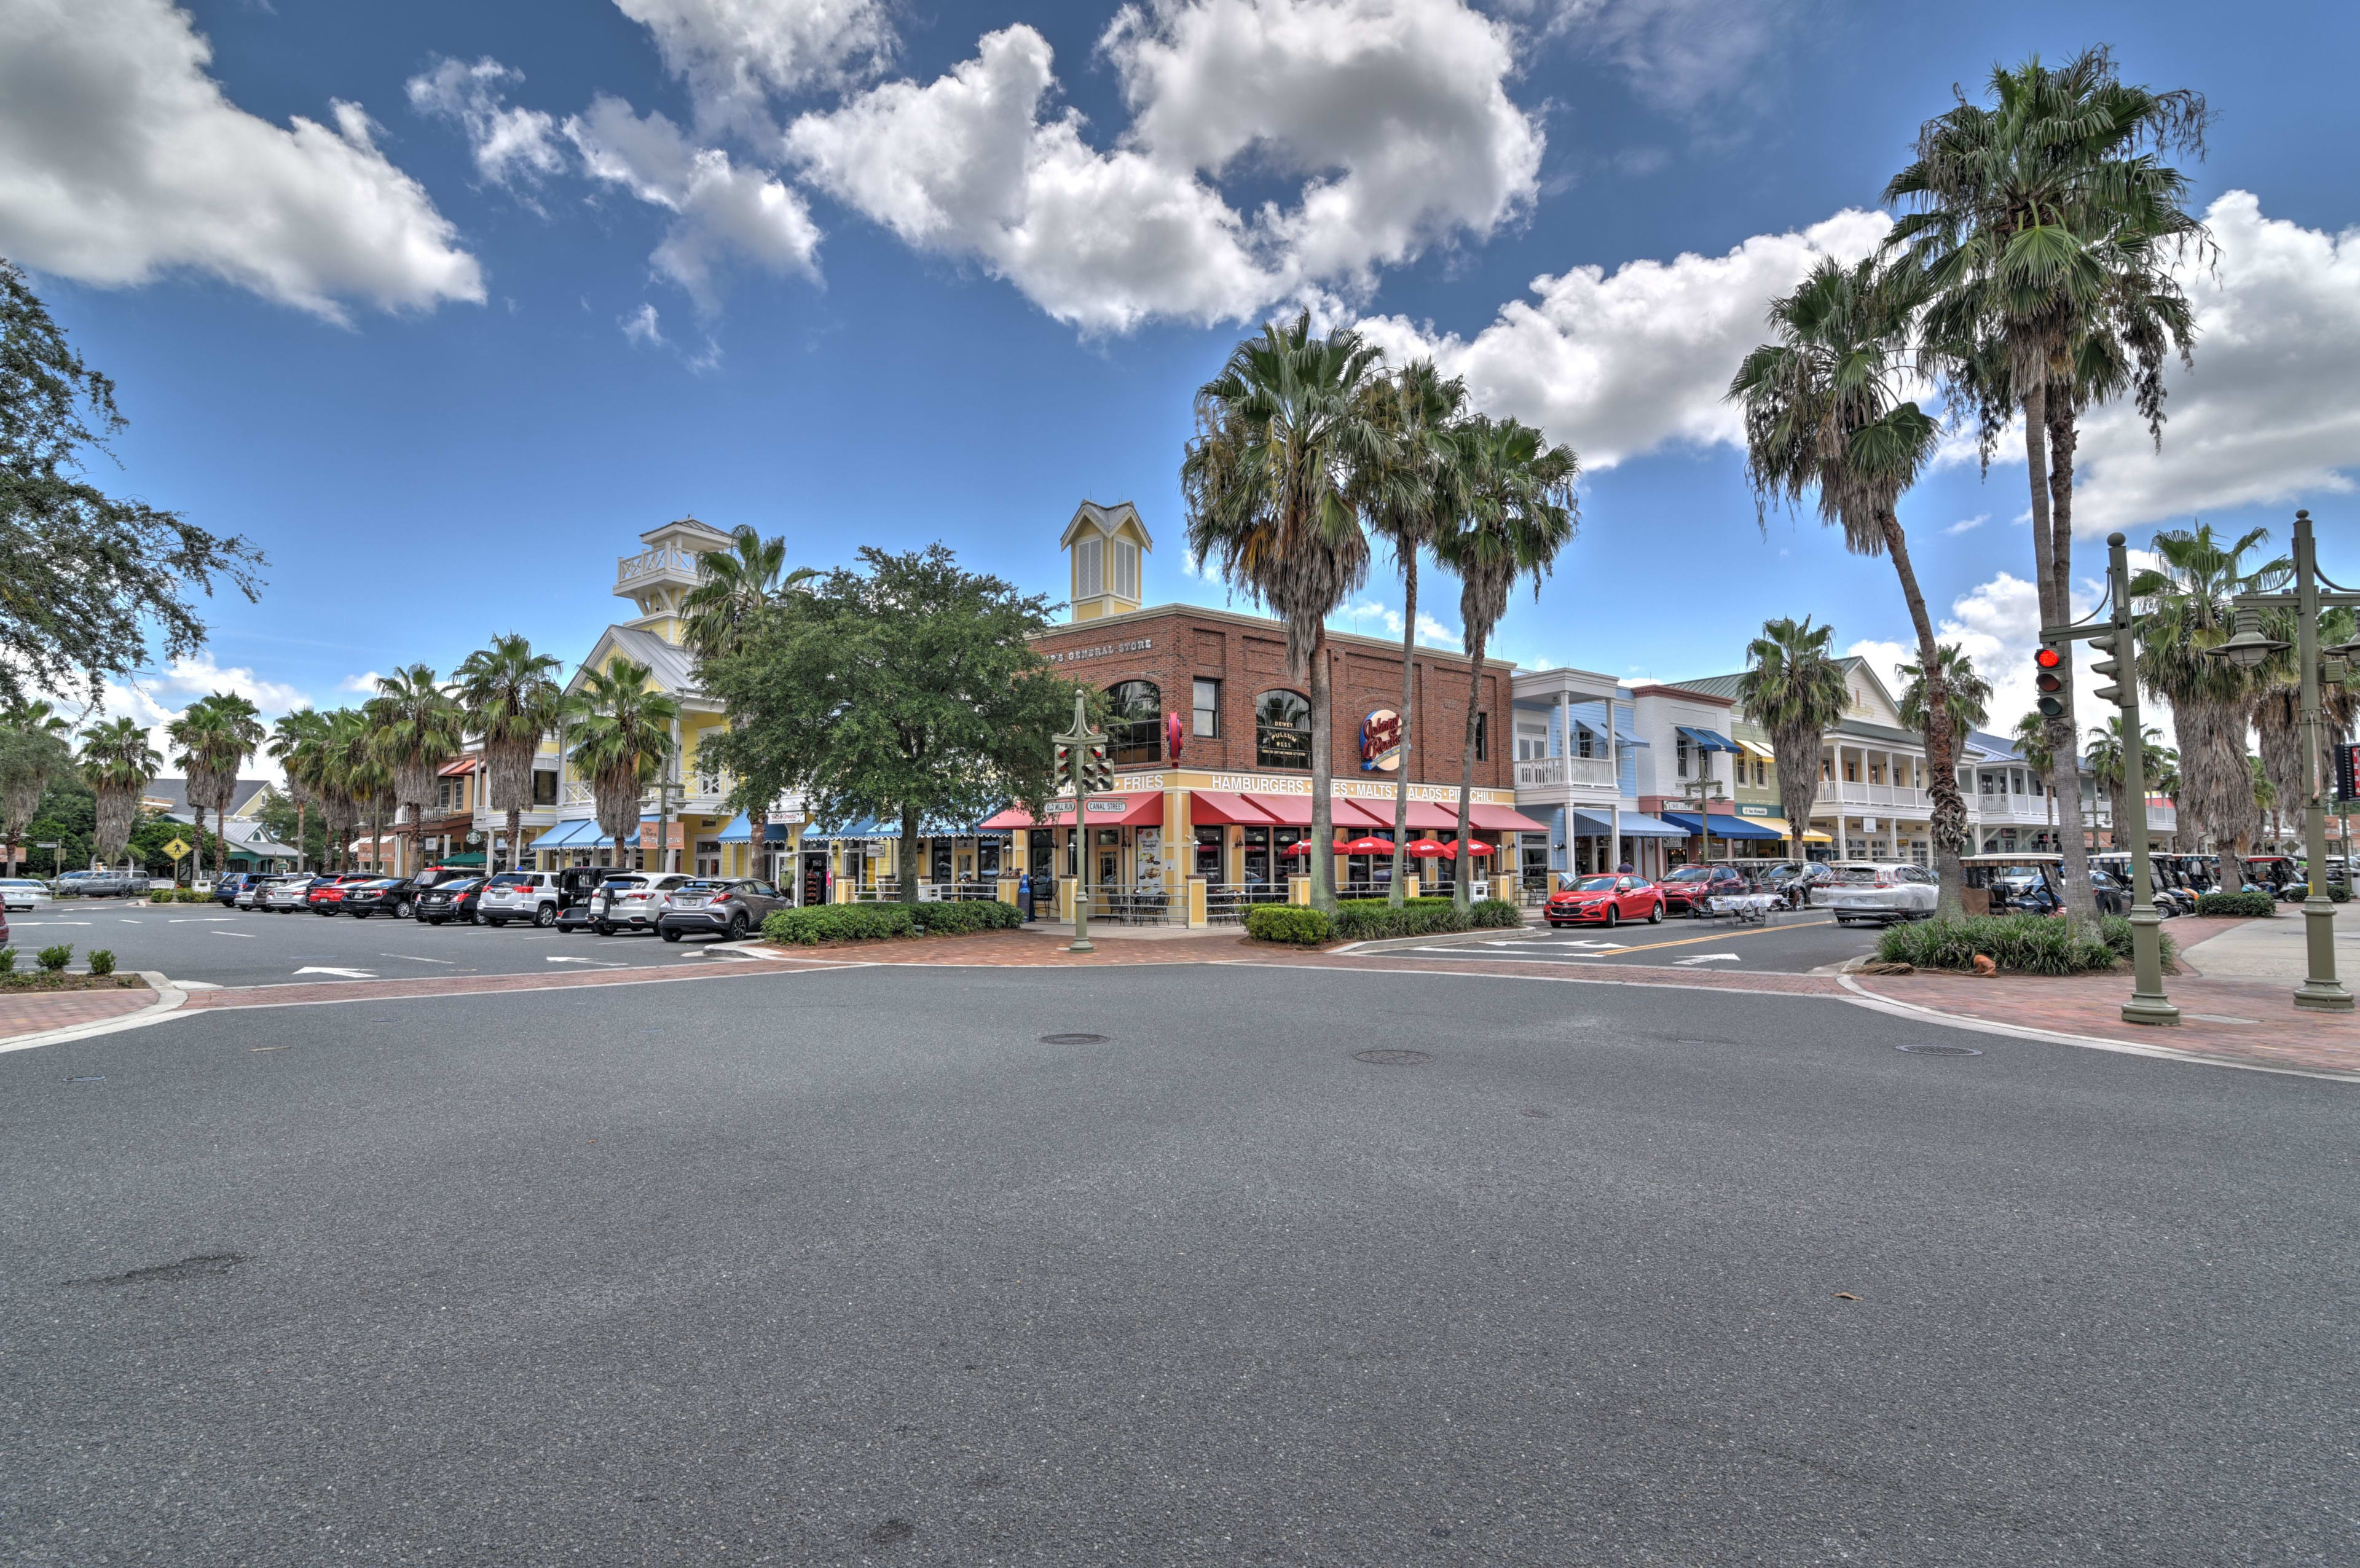 This shopping center can be reached with your golf cart!